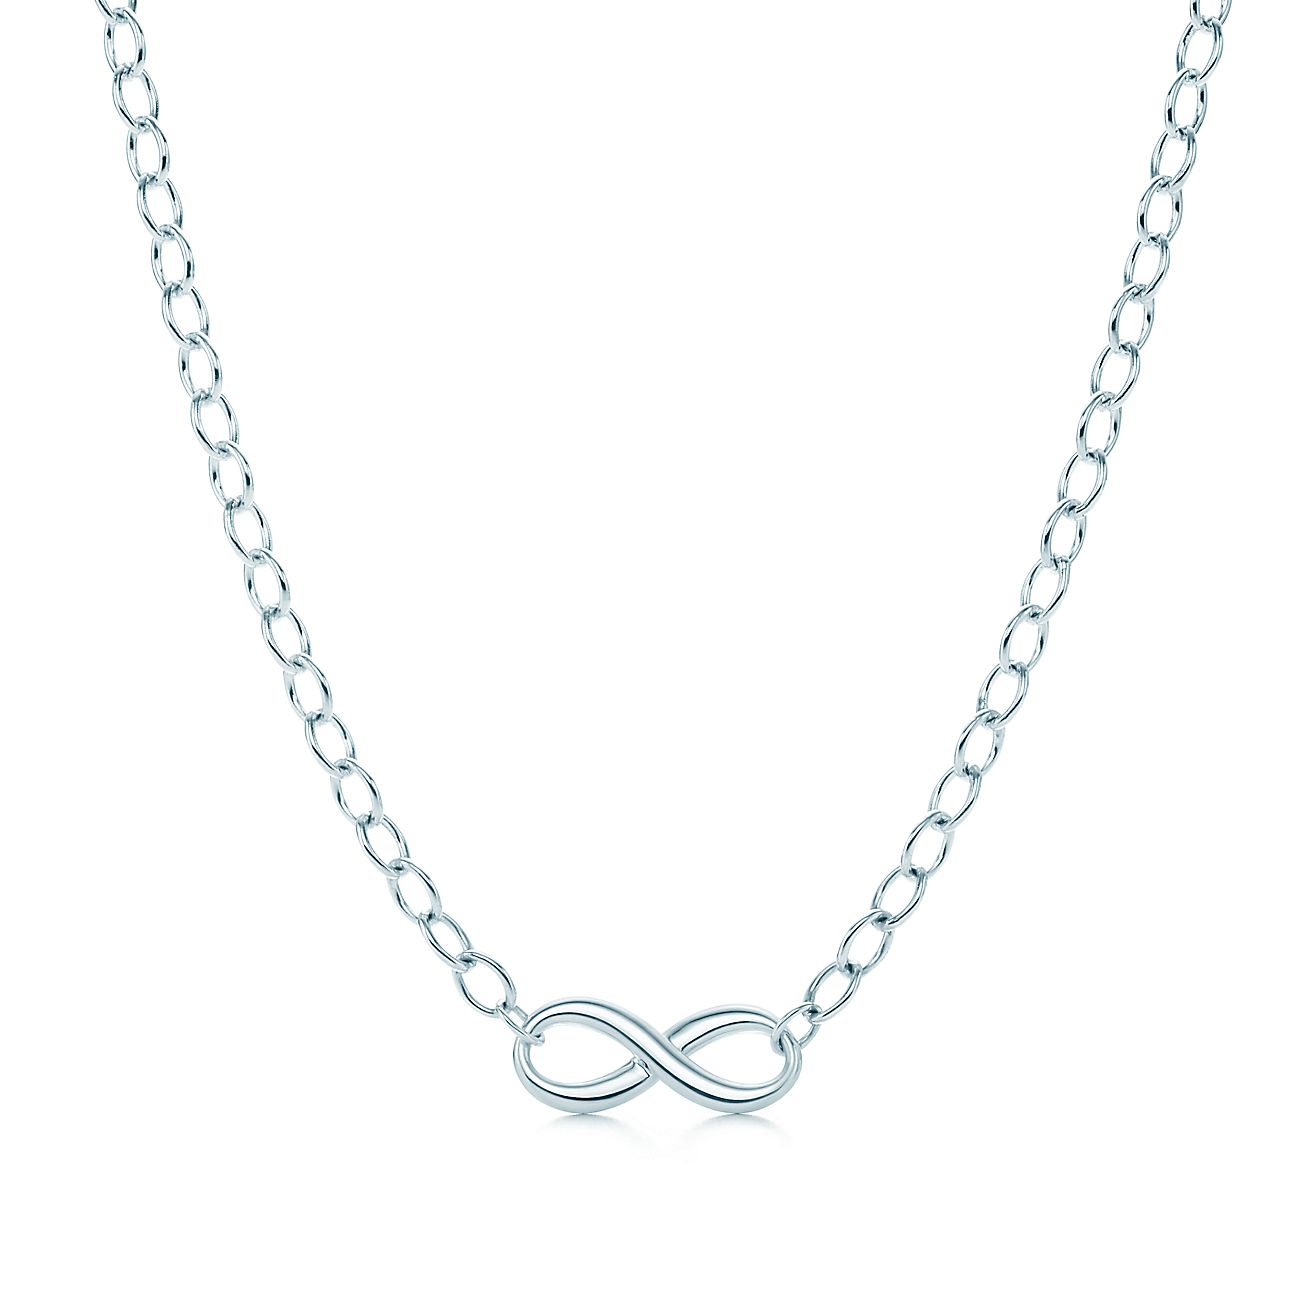 fan sign link jewelry amazon dp lovatic chain infinity com necklace silver tone pendant